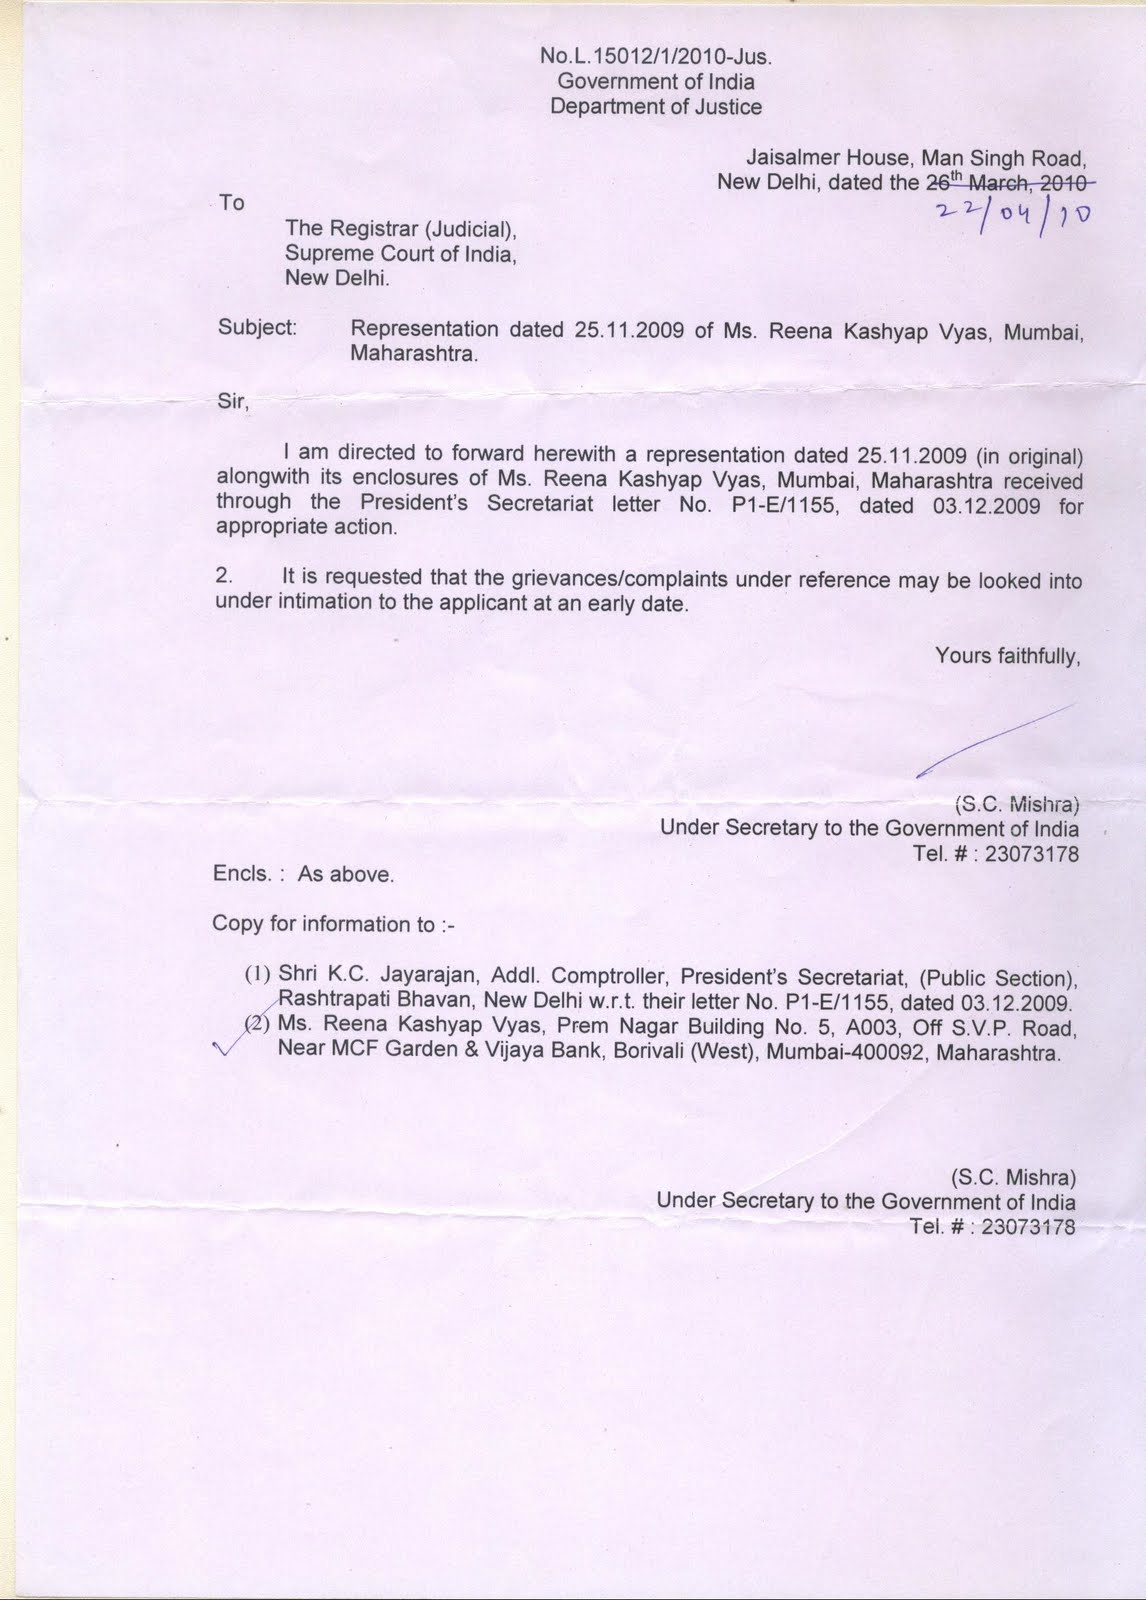 New horizon of corruption at mumbai india may 2010 letter petitionpublic interest litigation 2 honorable president of india to evoke the powers provided under article 143 of the constitution spiritdancerdesigns Images